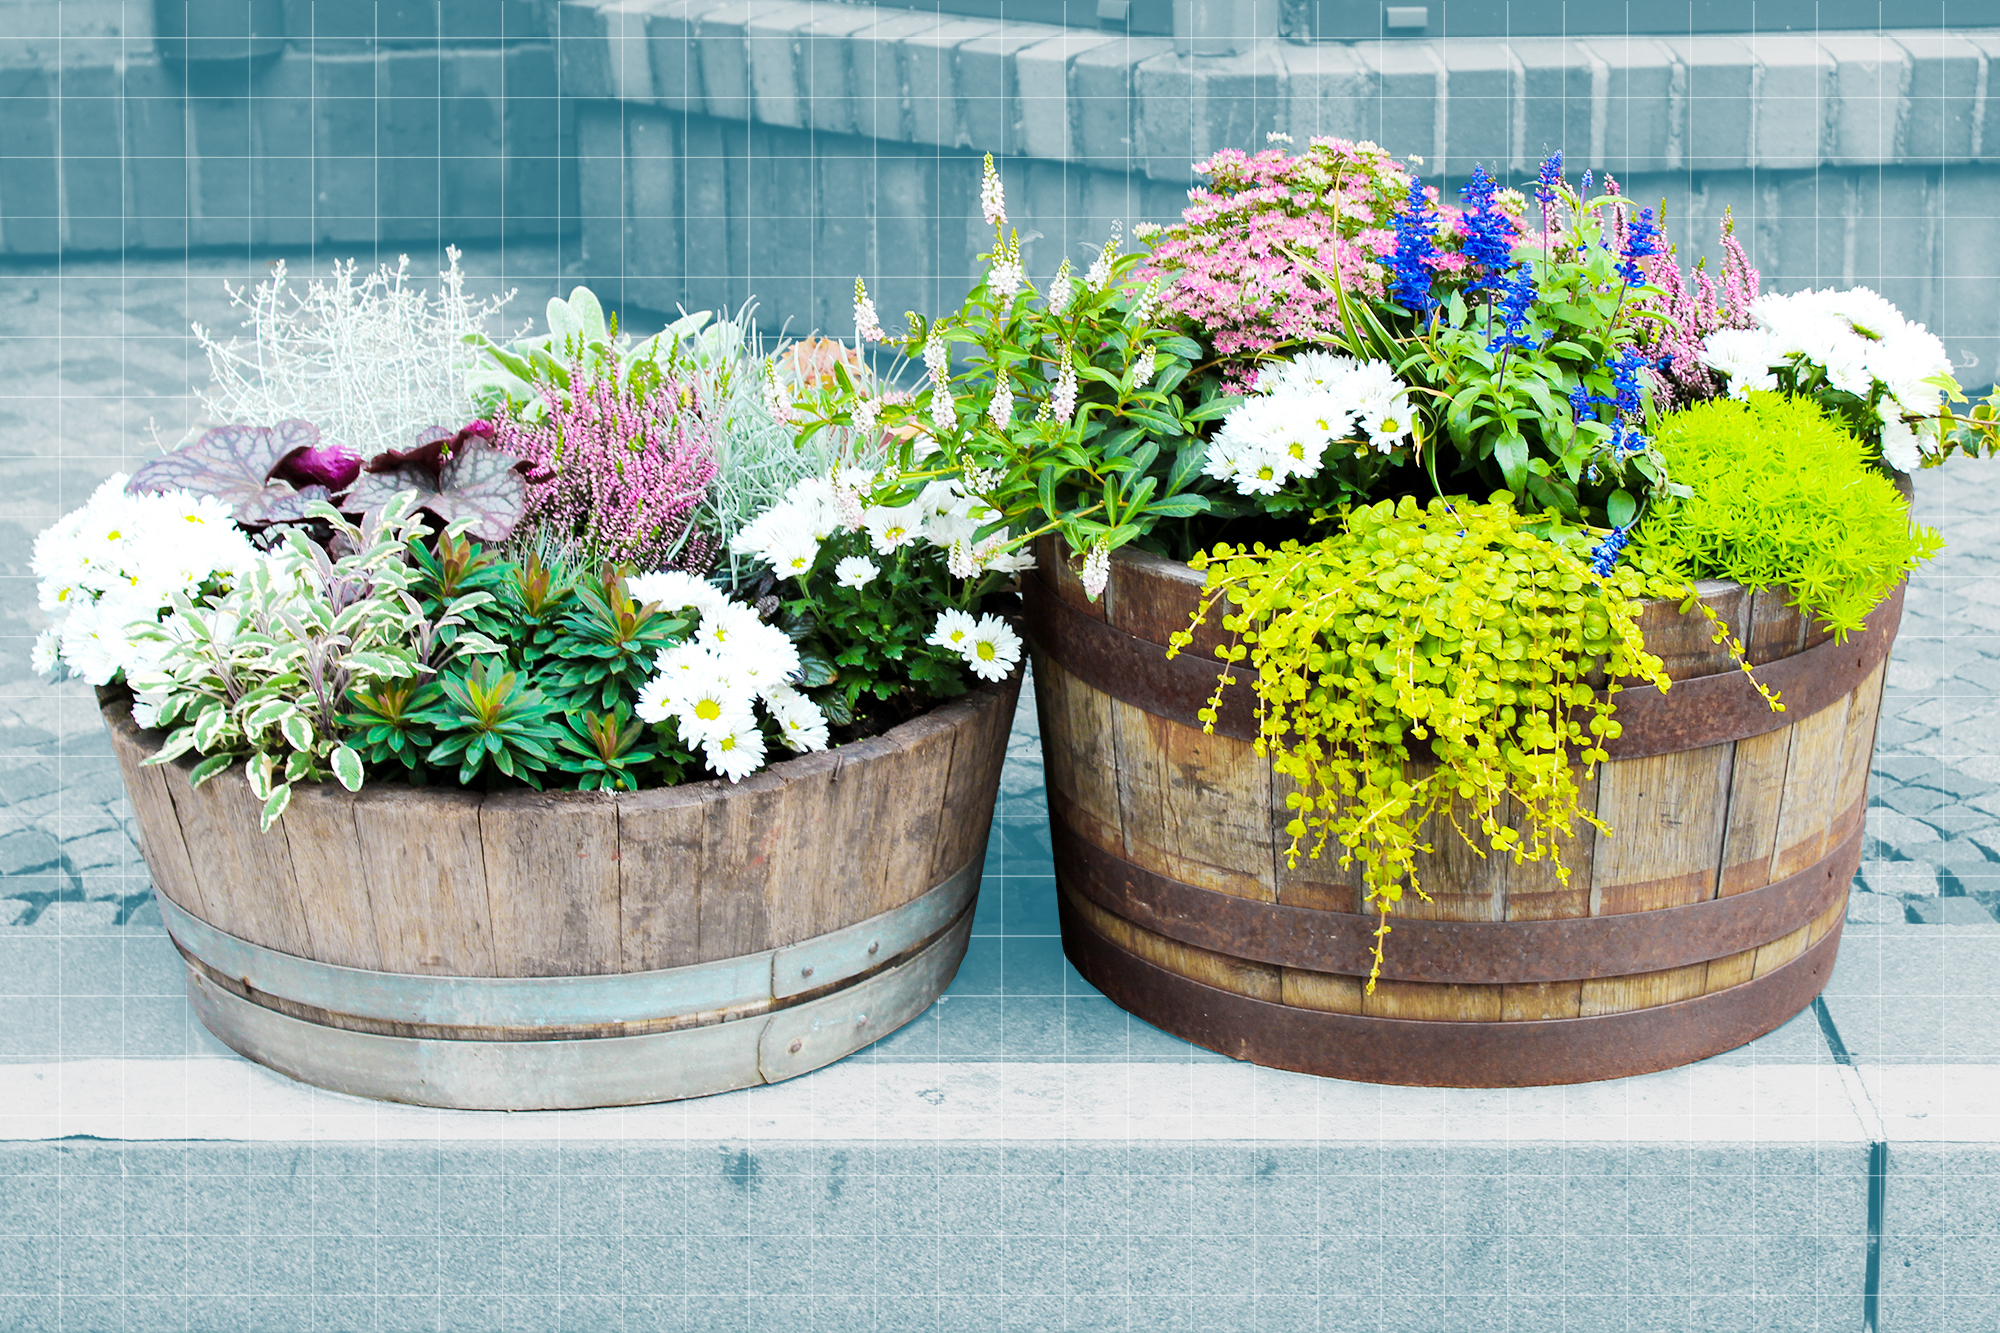 Two planters full of flowers